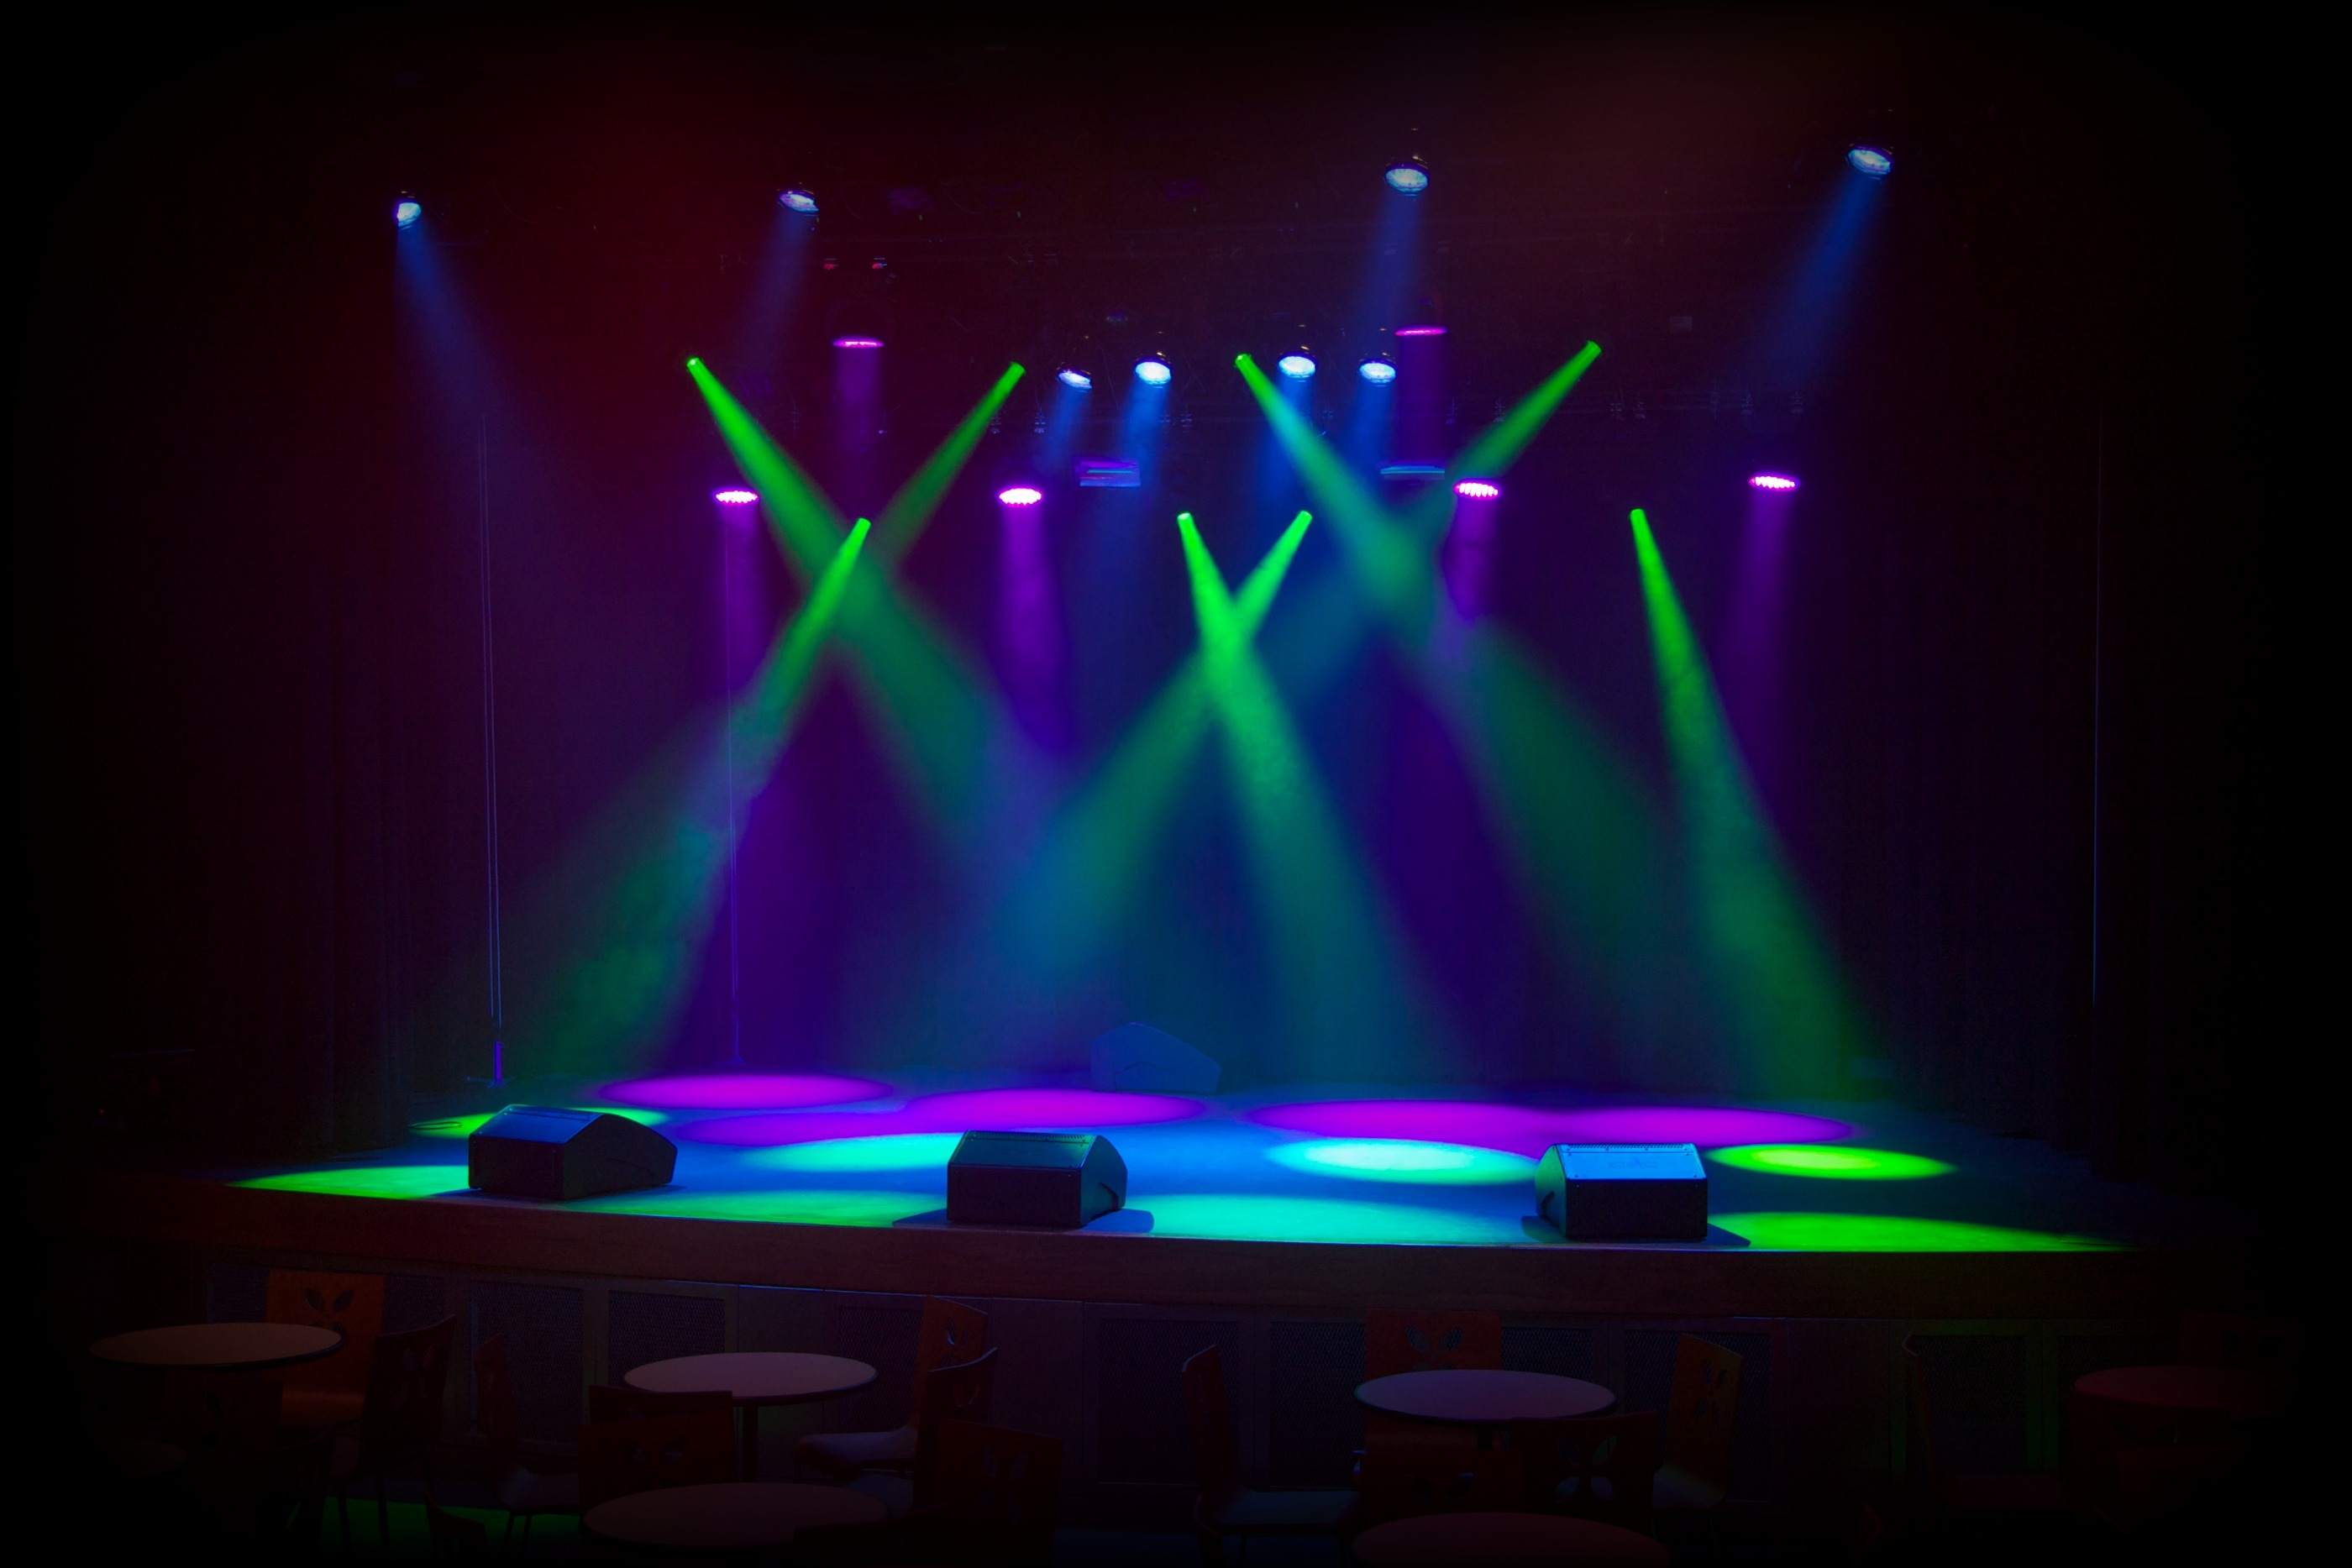 Avalanche concert lighting staging. Theatre clipart dj light